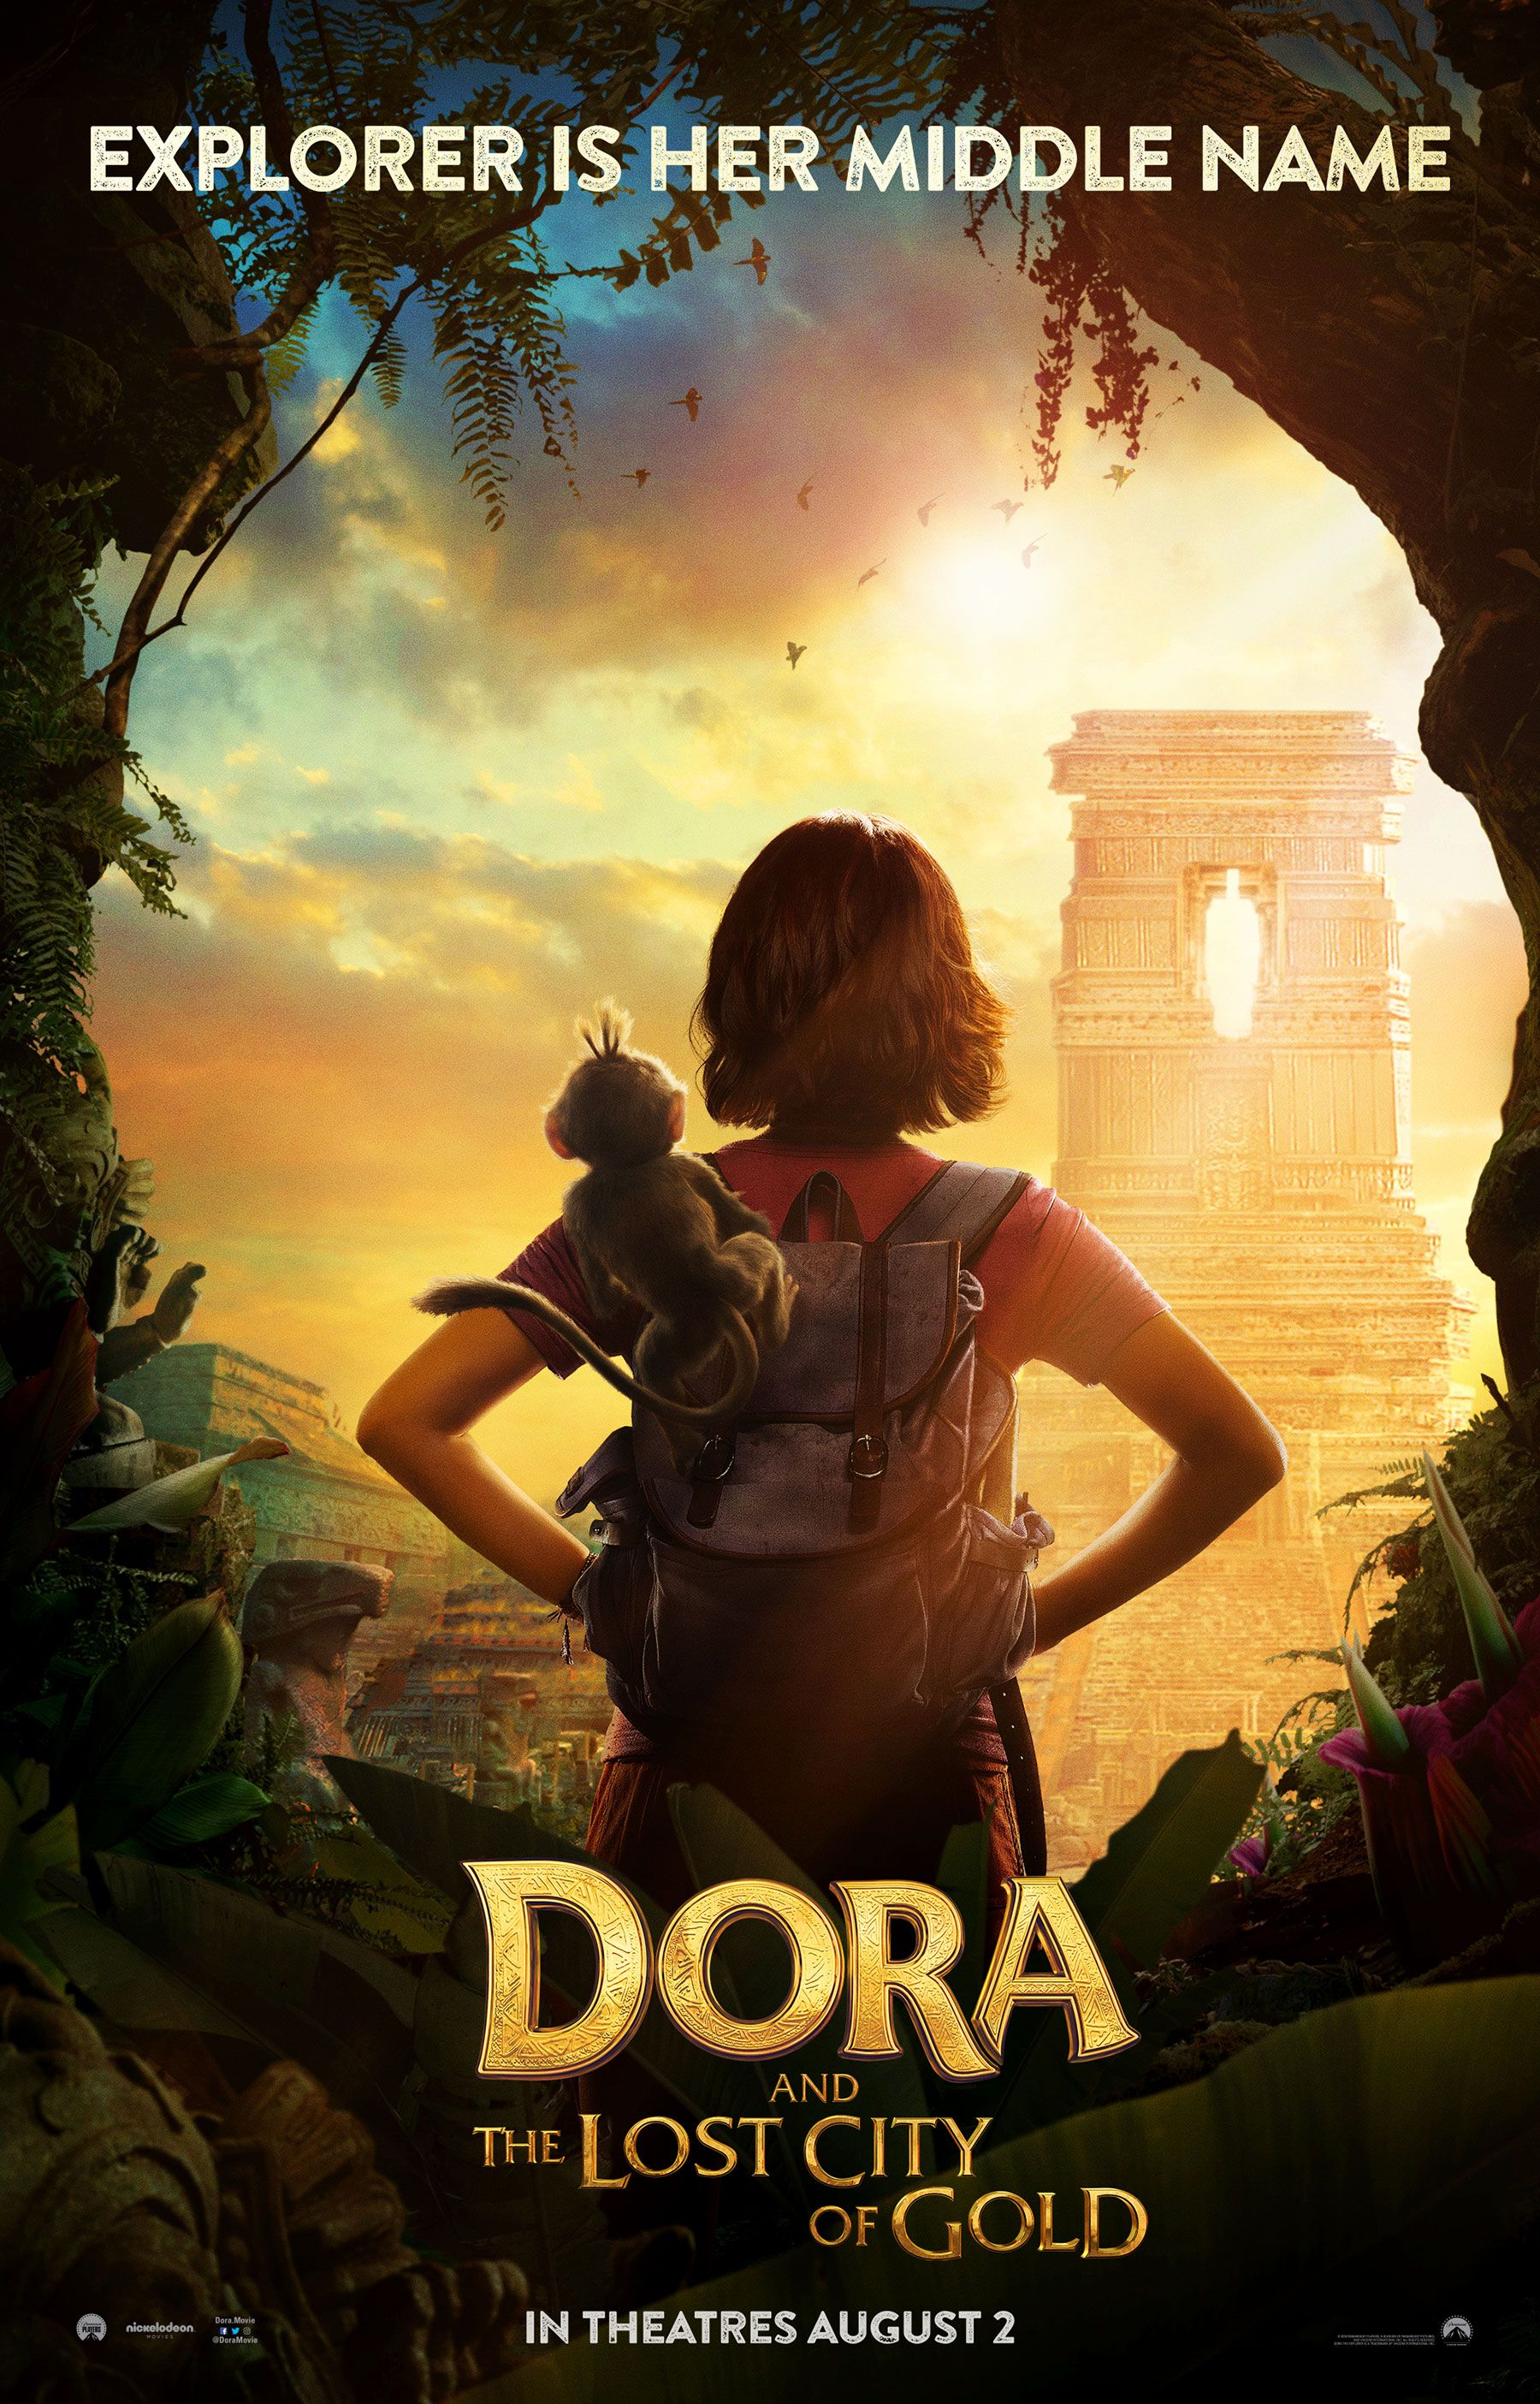 Dora the Explorer live-action movie posters explore the Lost City of Gold